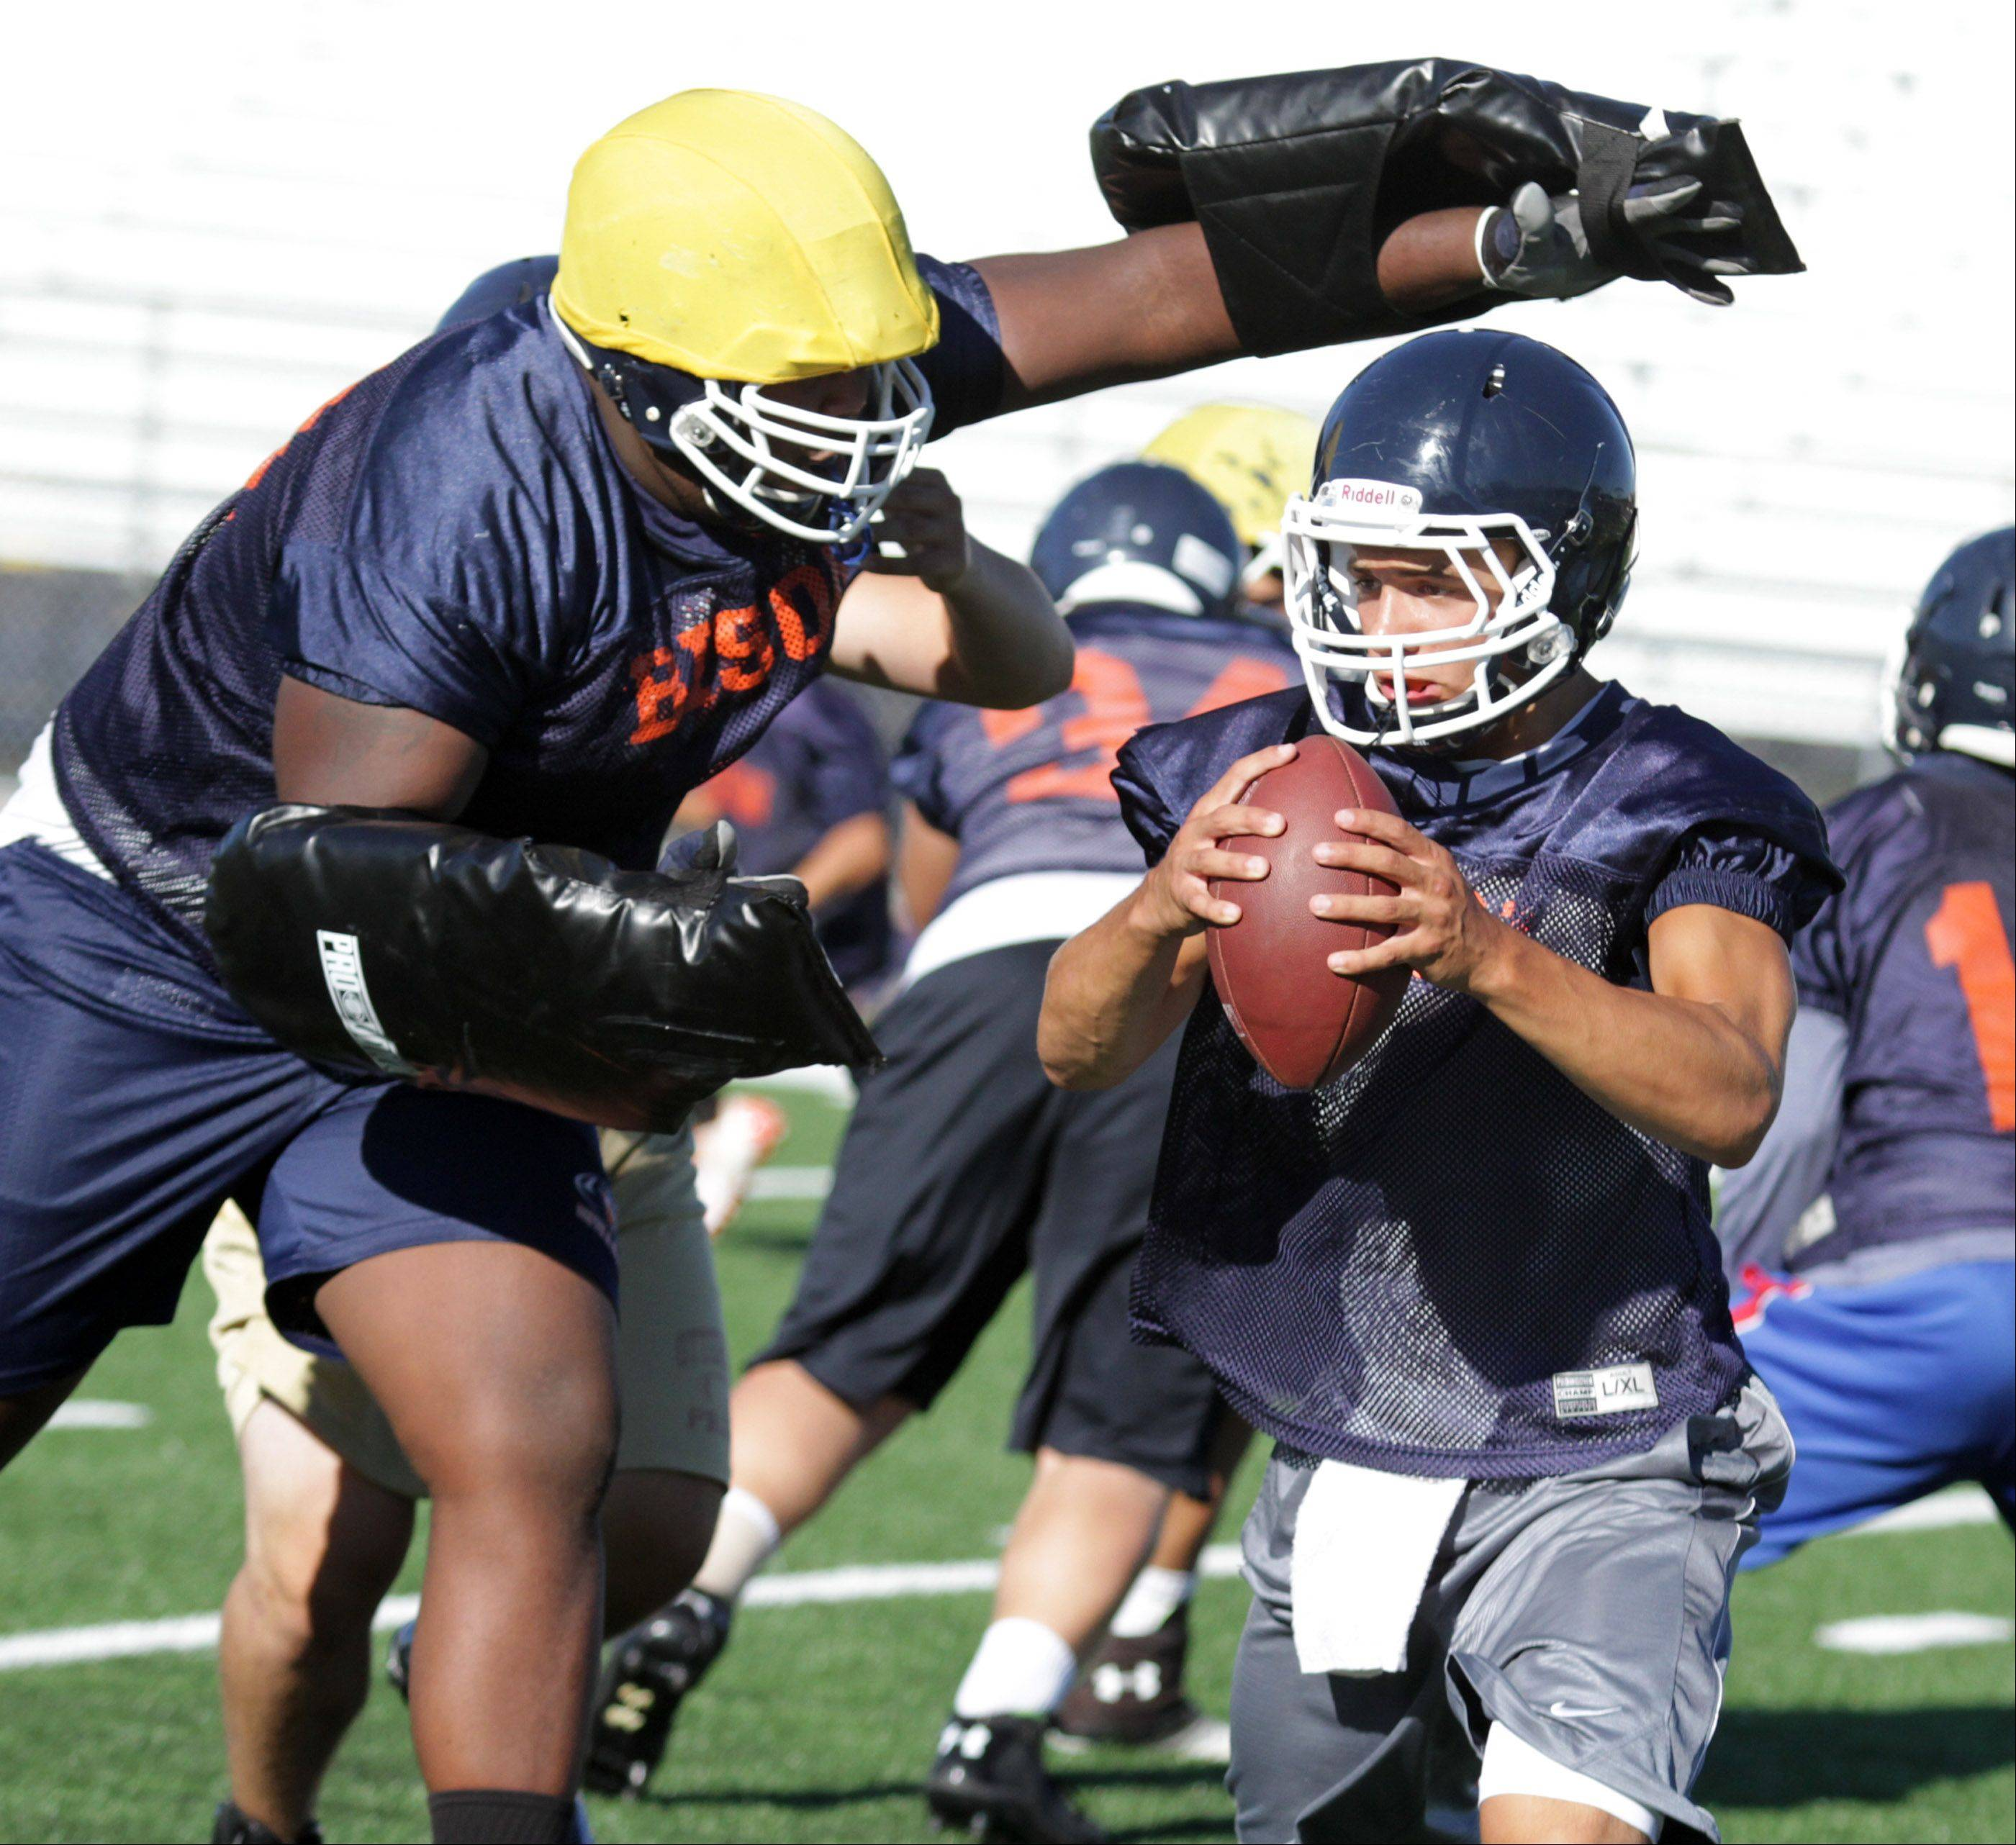 Buffalo Grove High School starting quarterback Andrew Apel tries to escape the defensive line .